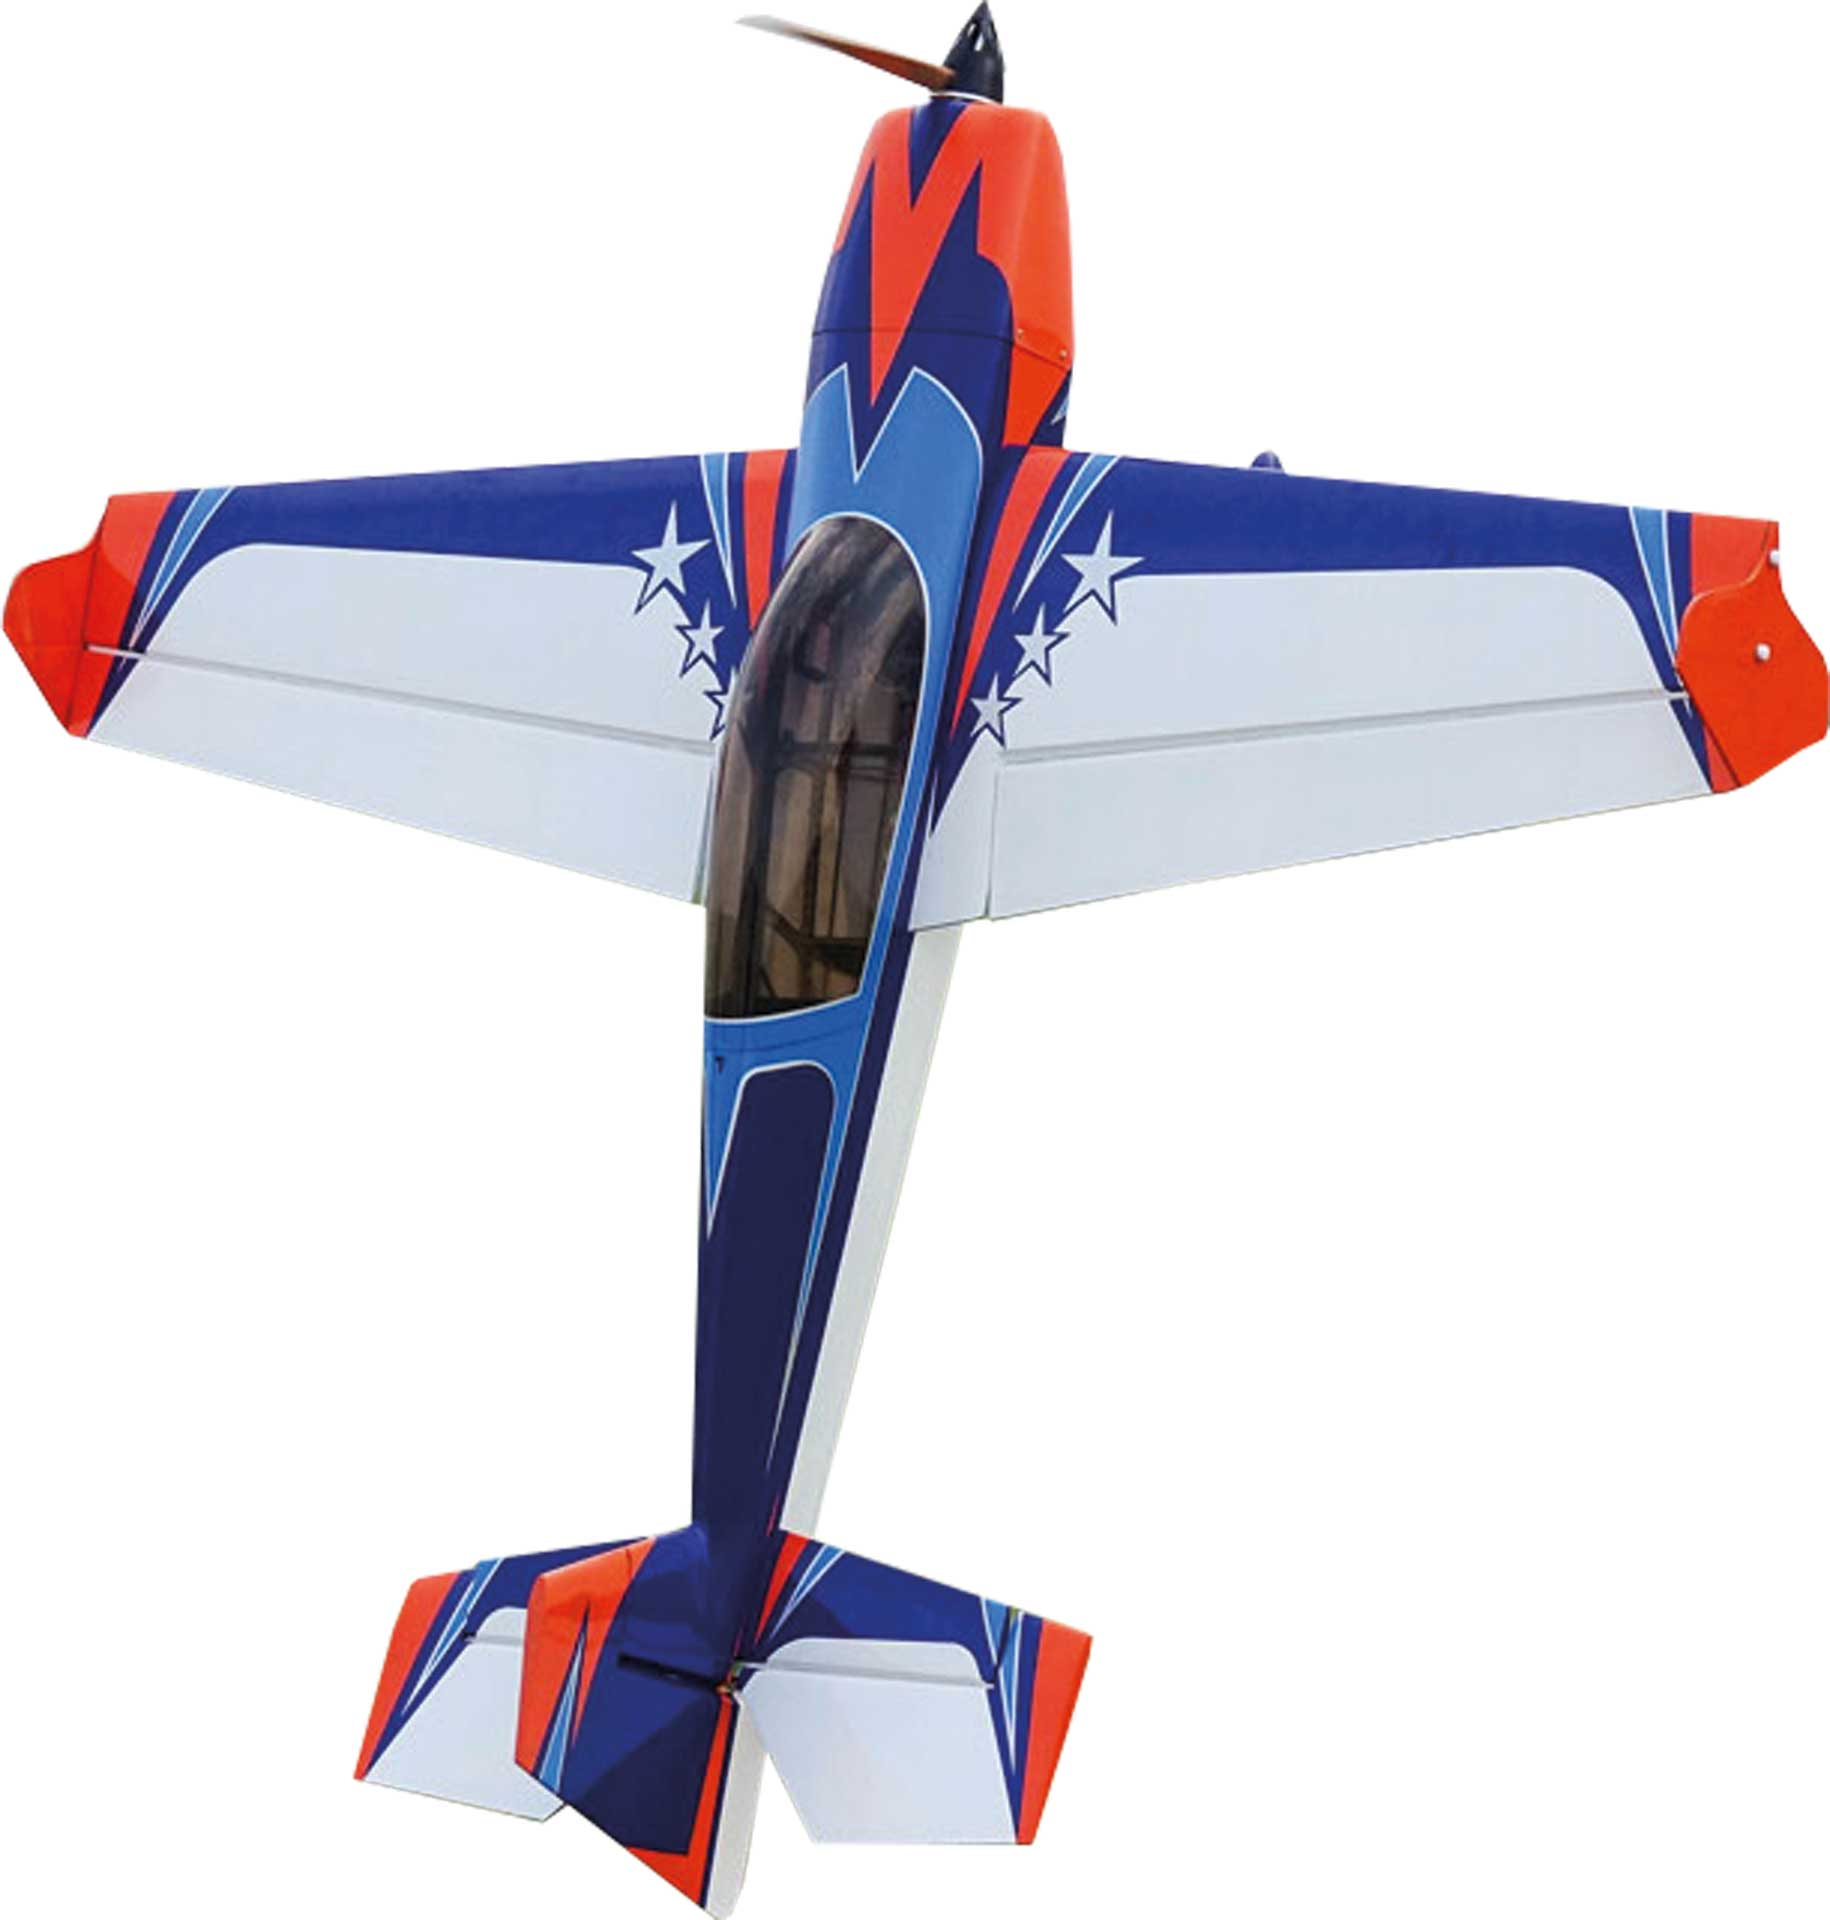 "EXTREMEFLIGHT-RC EXTRA 300 48"" V2 ORANGE/BLAU/WEISS ARF"